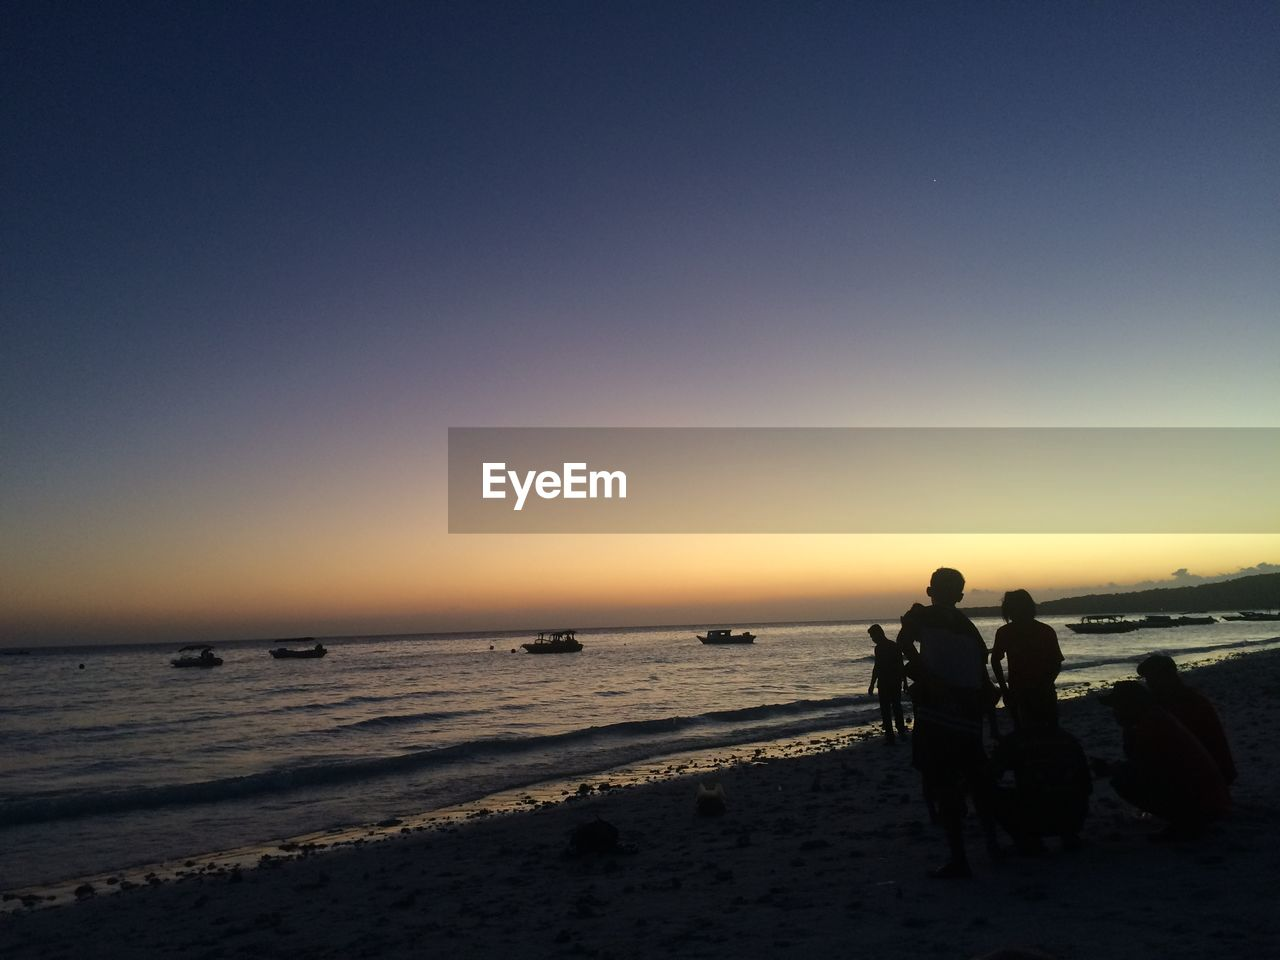 sea, water, sky, beach, real people, sunset, land, beauty in nature, scenics - nature, lifestyles, leisure activity, men, clear sky, people, nature, copy space, horizon over water, silhouette, horizon, outdoors